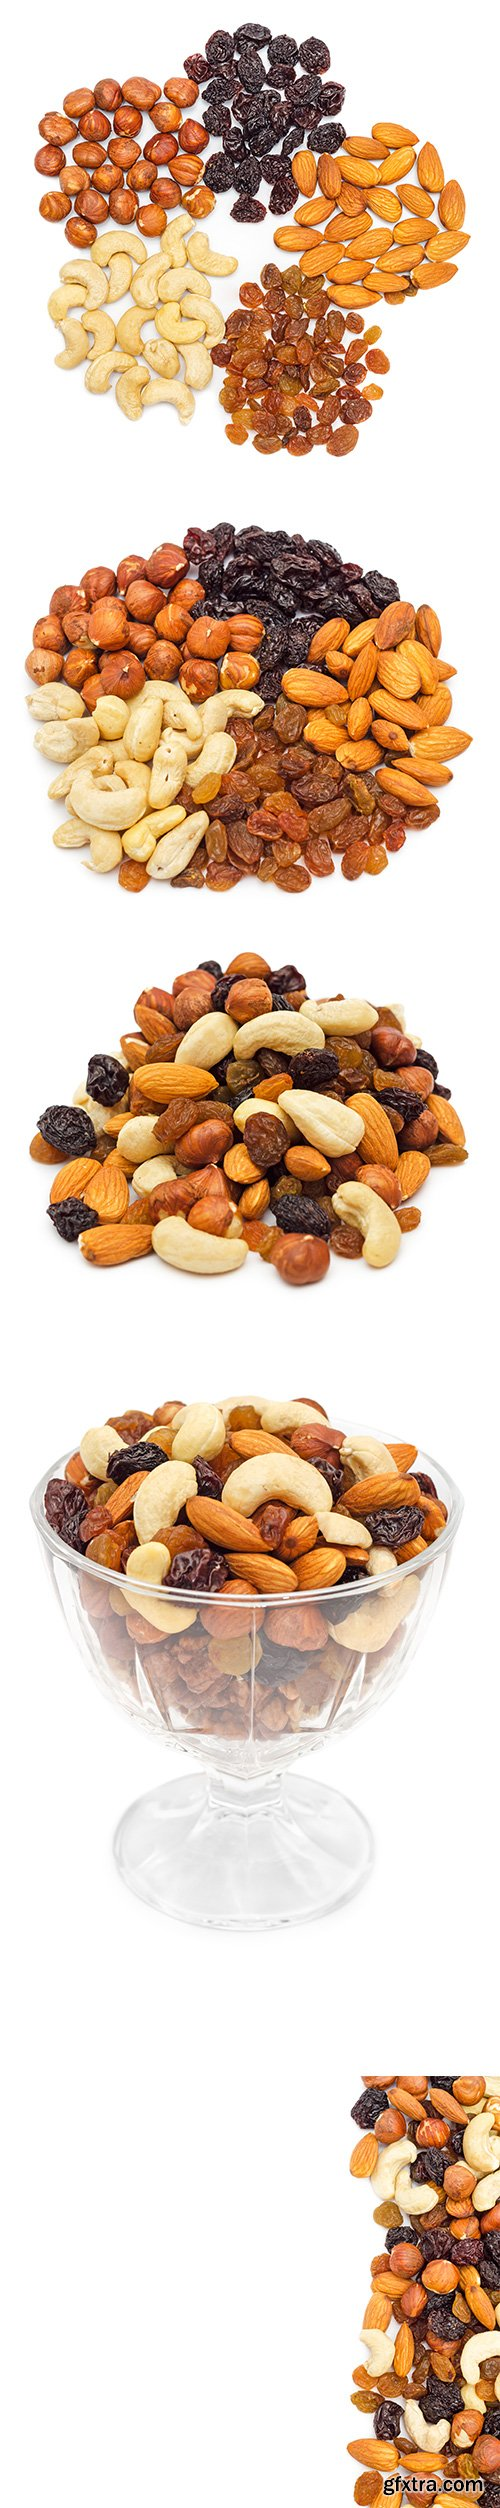 Mixed Nuts Isolated - 7xJPGs